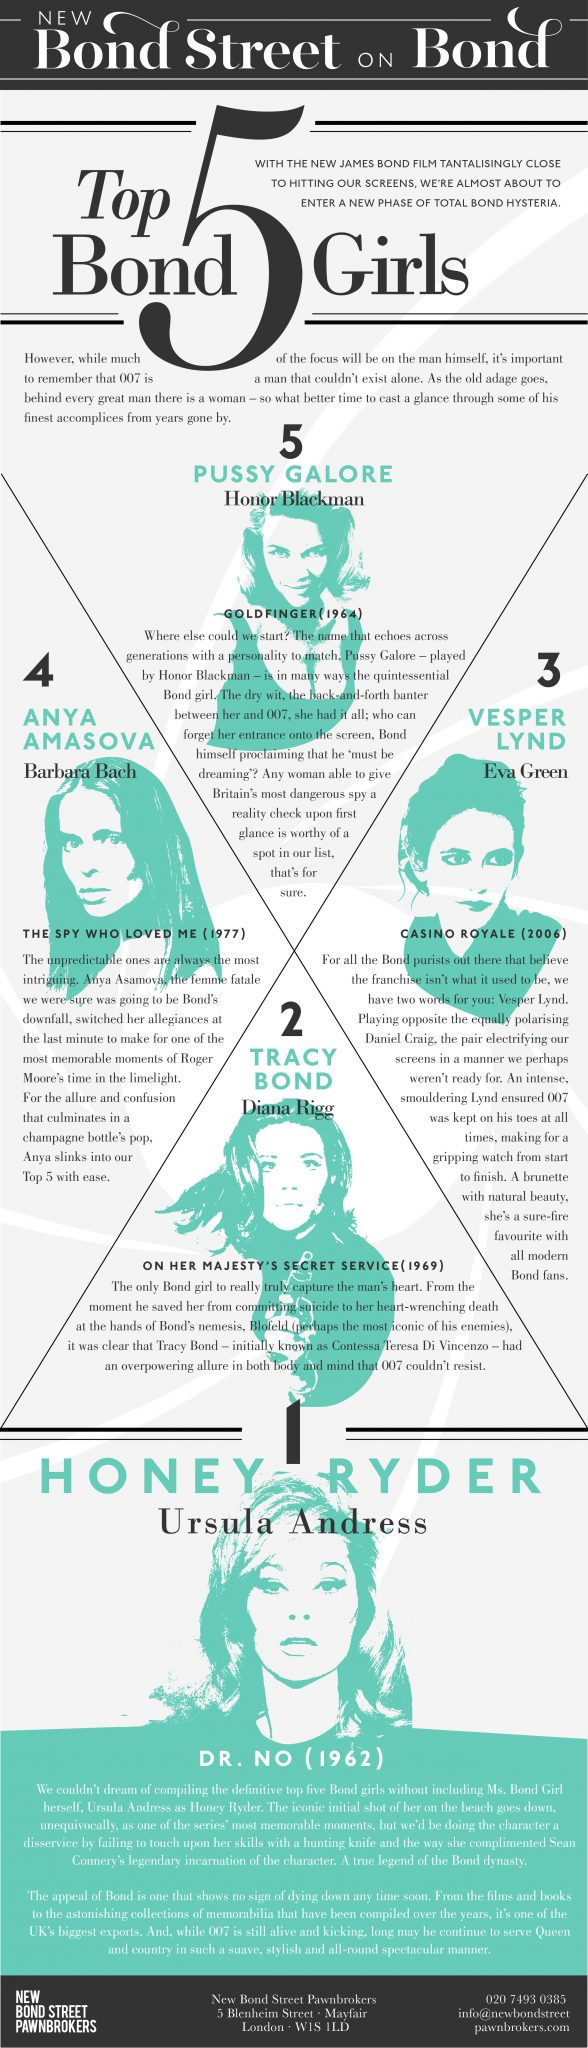 Top 5 James Bond 007 Girls - Infographic